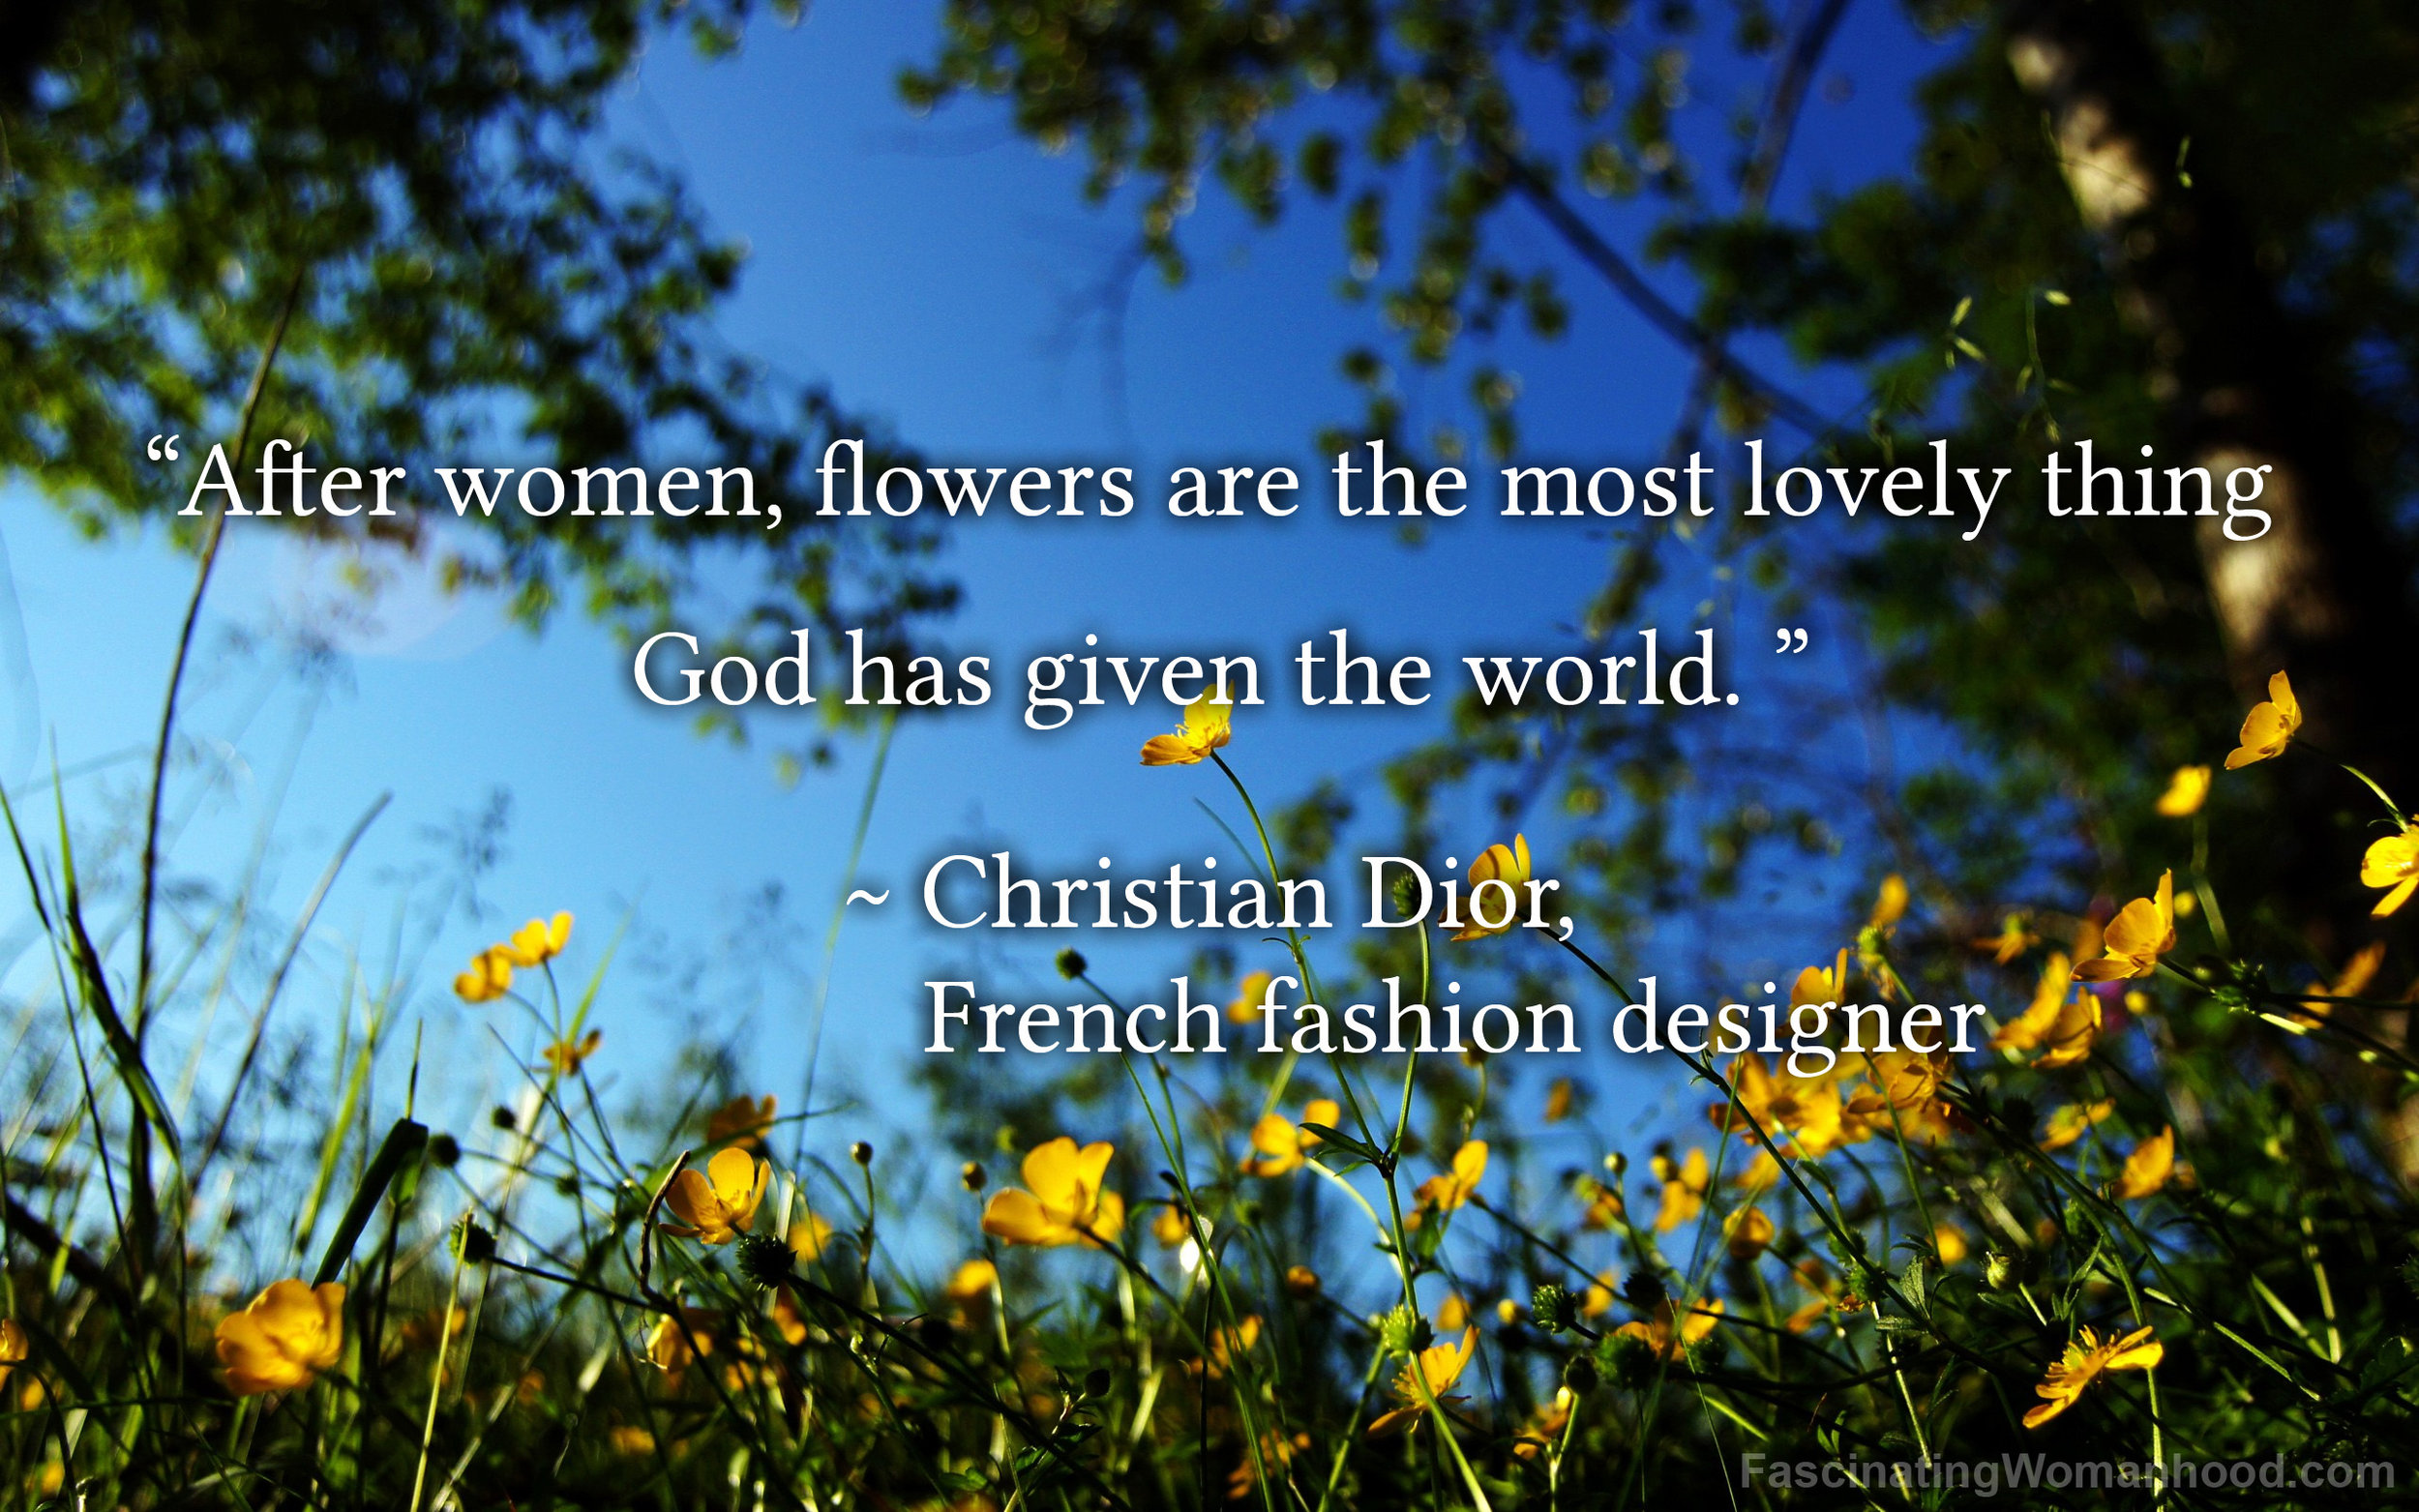 A Quote by Christian Dior.jpg